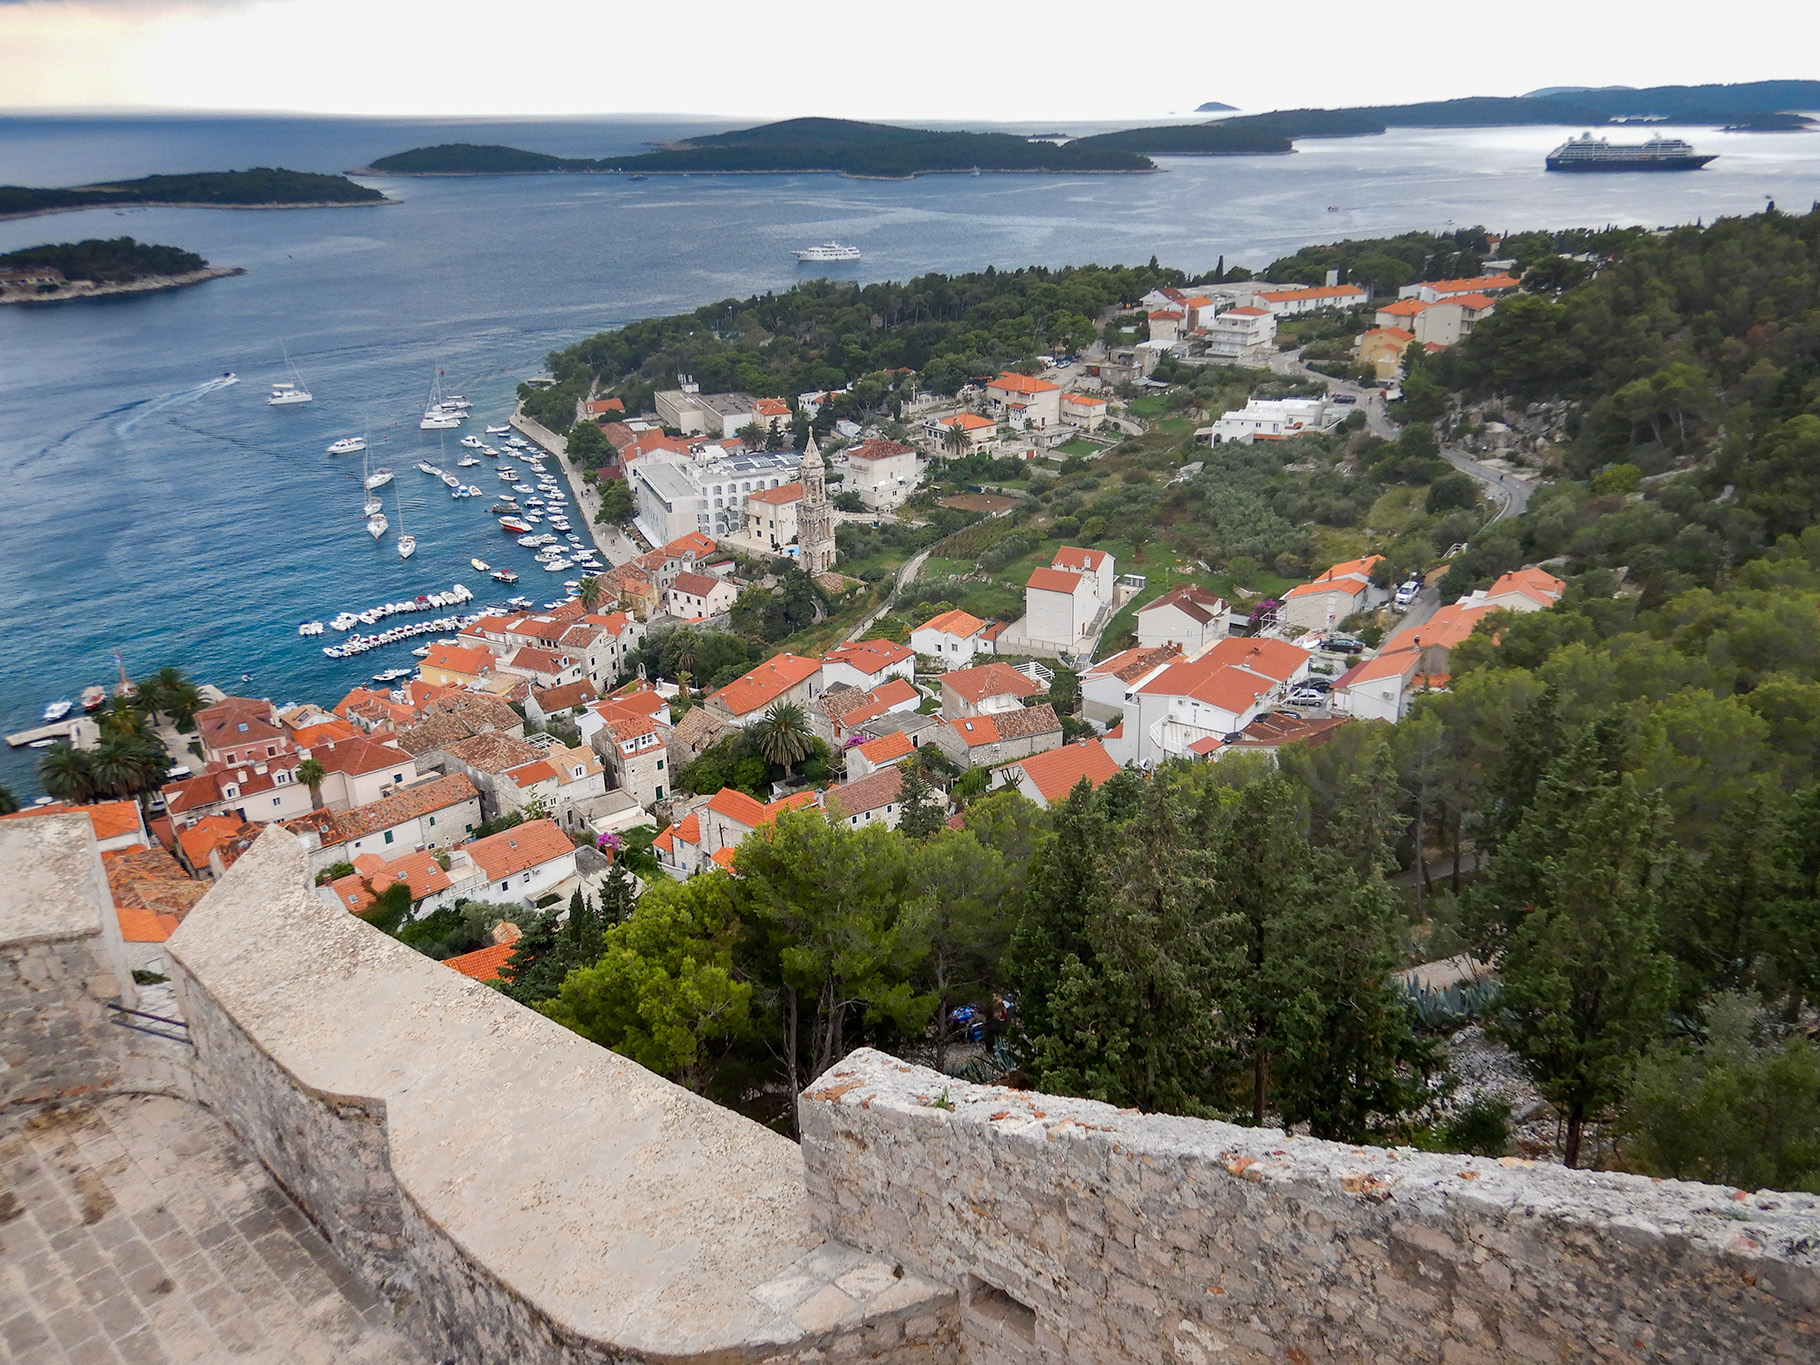 A view of the Adriatic from the fort